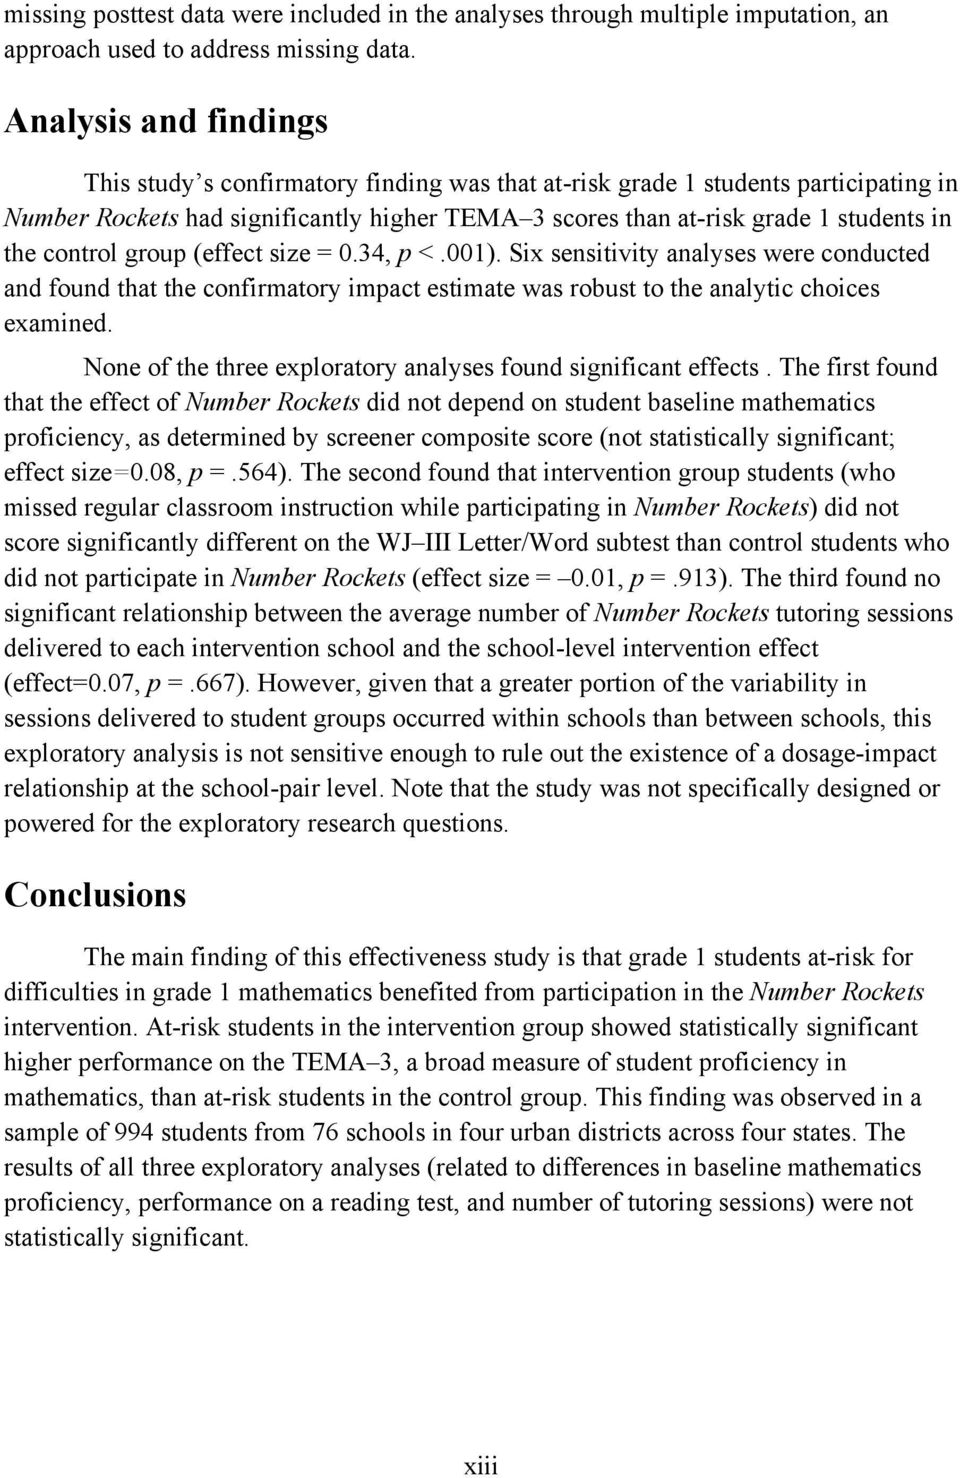 control group (effect size = 0.34, p <.001). Six sensitivity analyses were conducted and found that the confirmatory impact estimate was robust to the analytic choices examined.